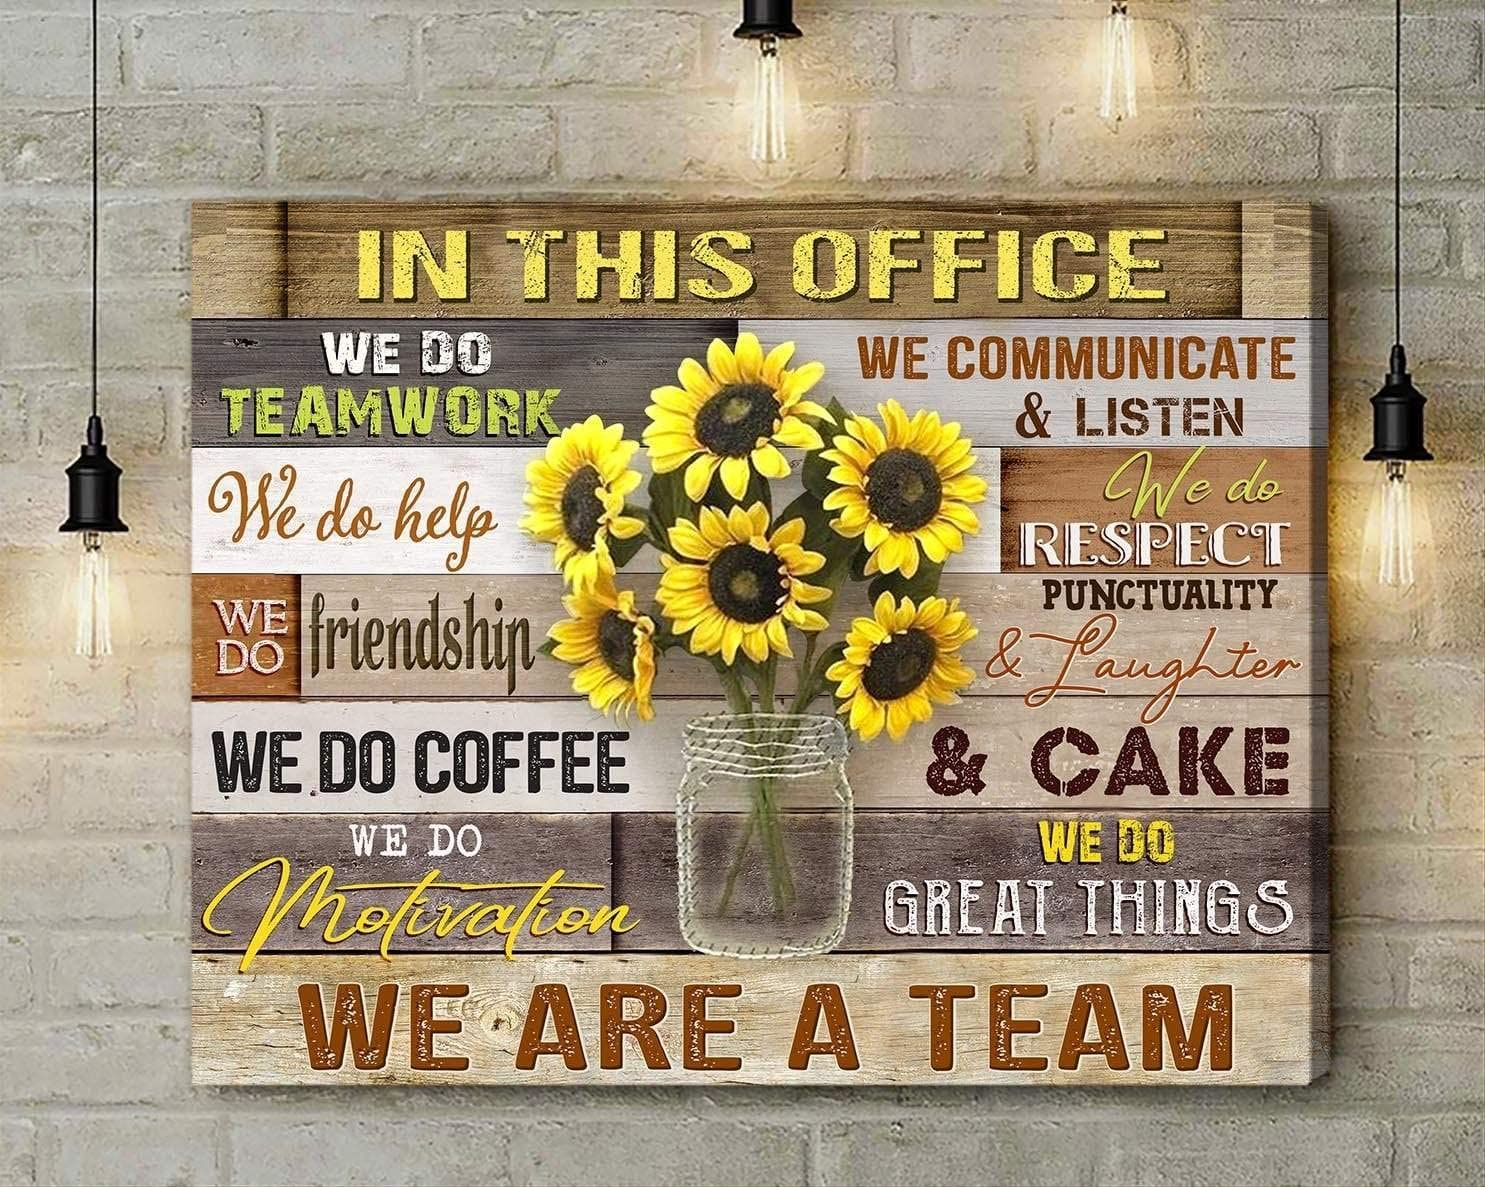 RosyyShop Sunflower in This Office We Do Teamwork We Do Help We Do Friendship We are A Team Satin Poster No Frame OR Canvas 0.75 Inch Print in US